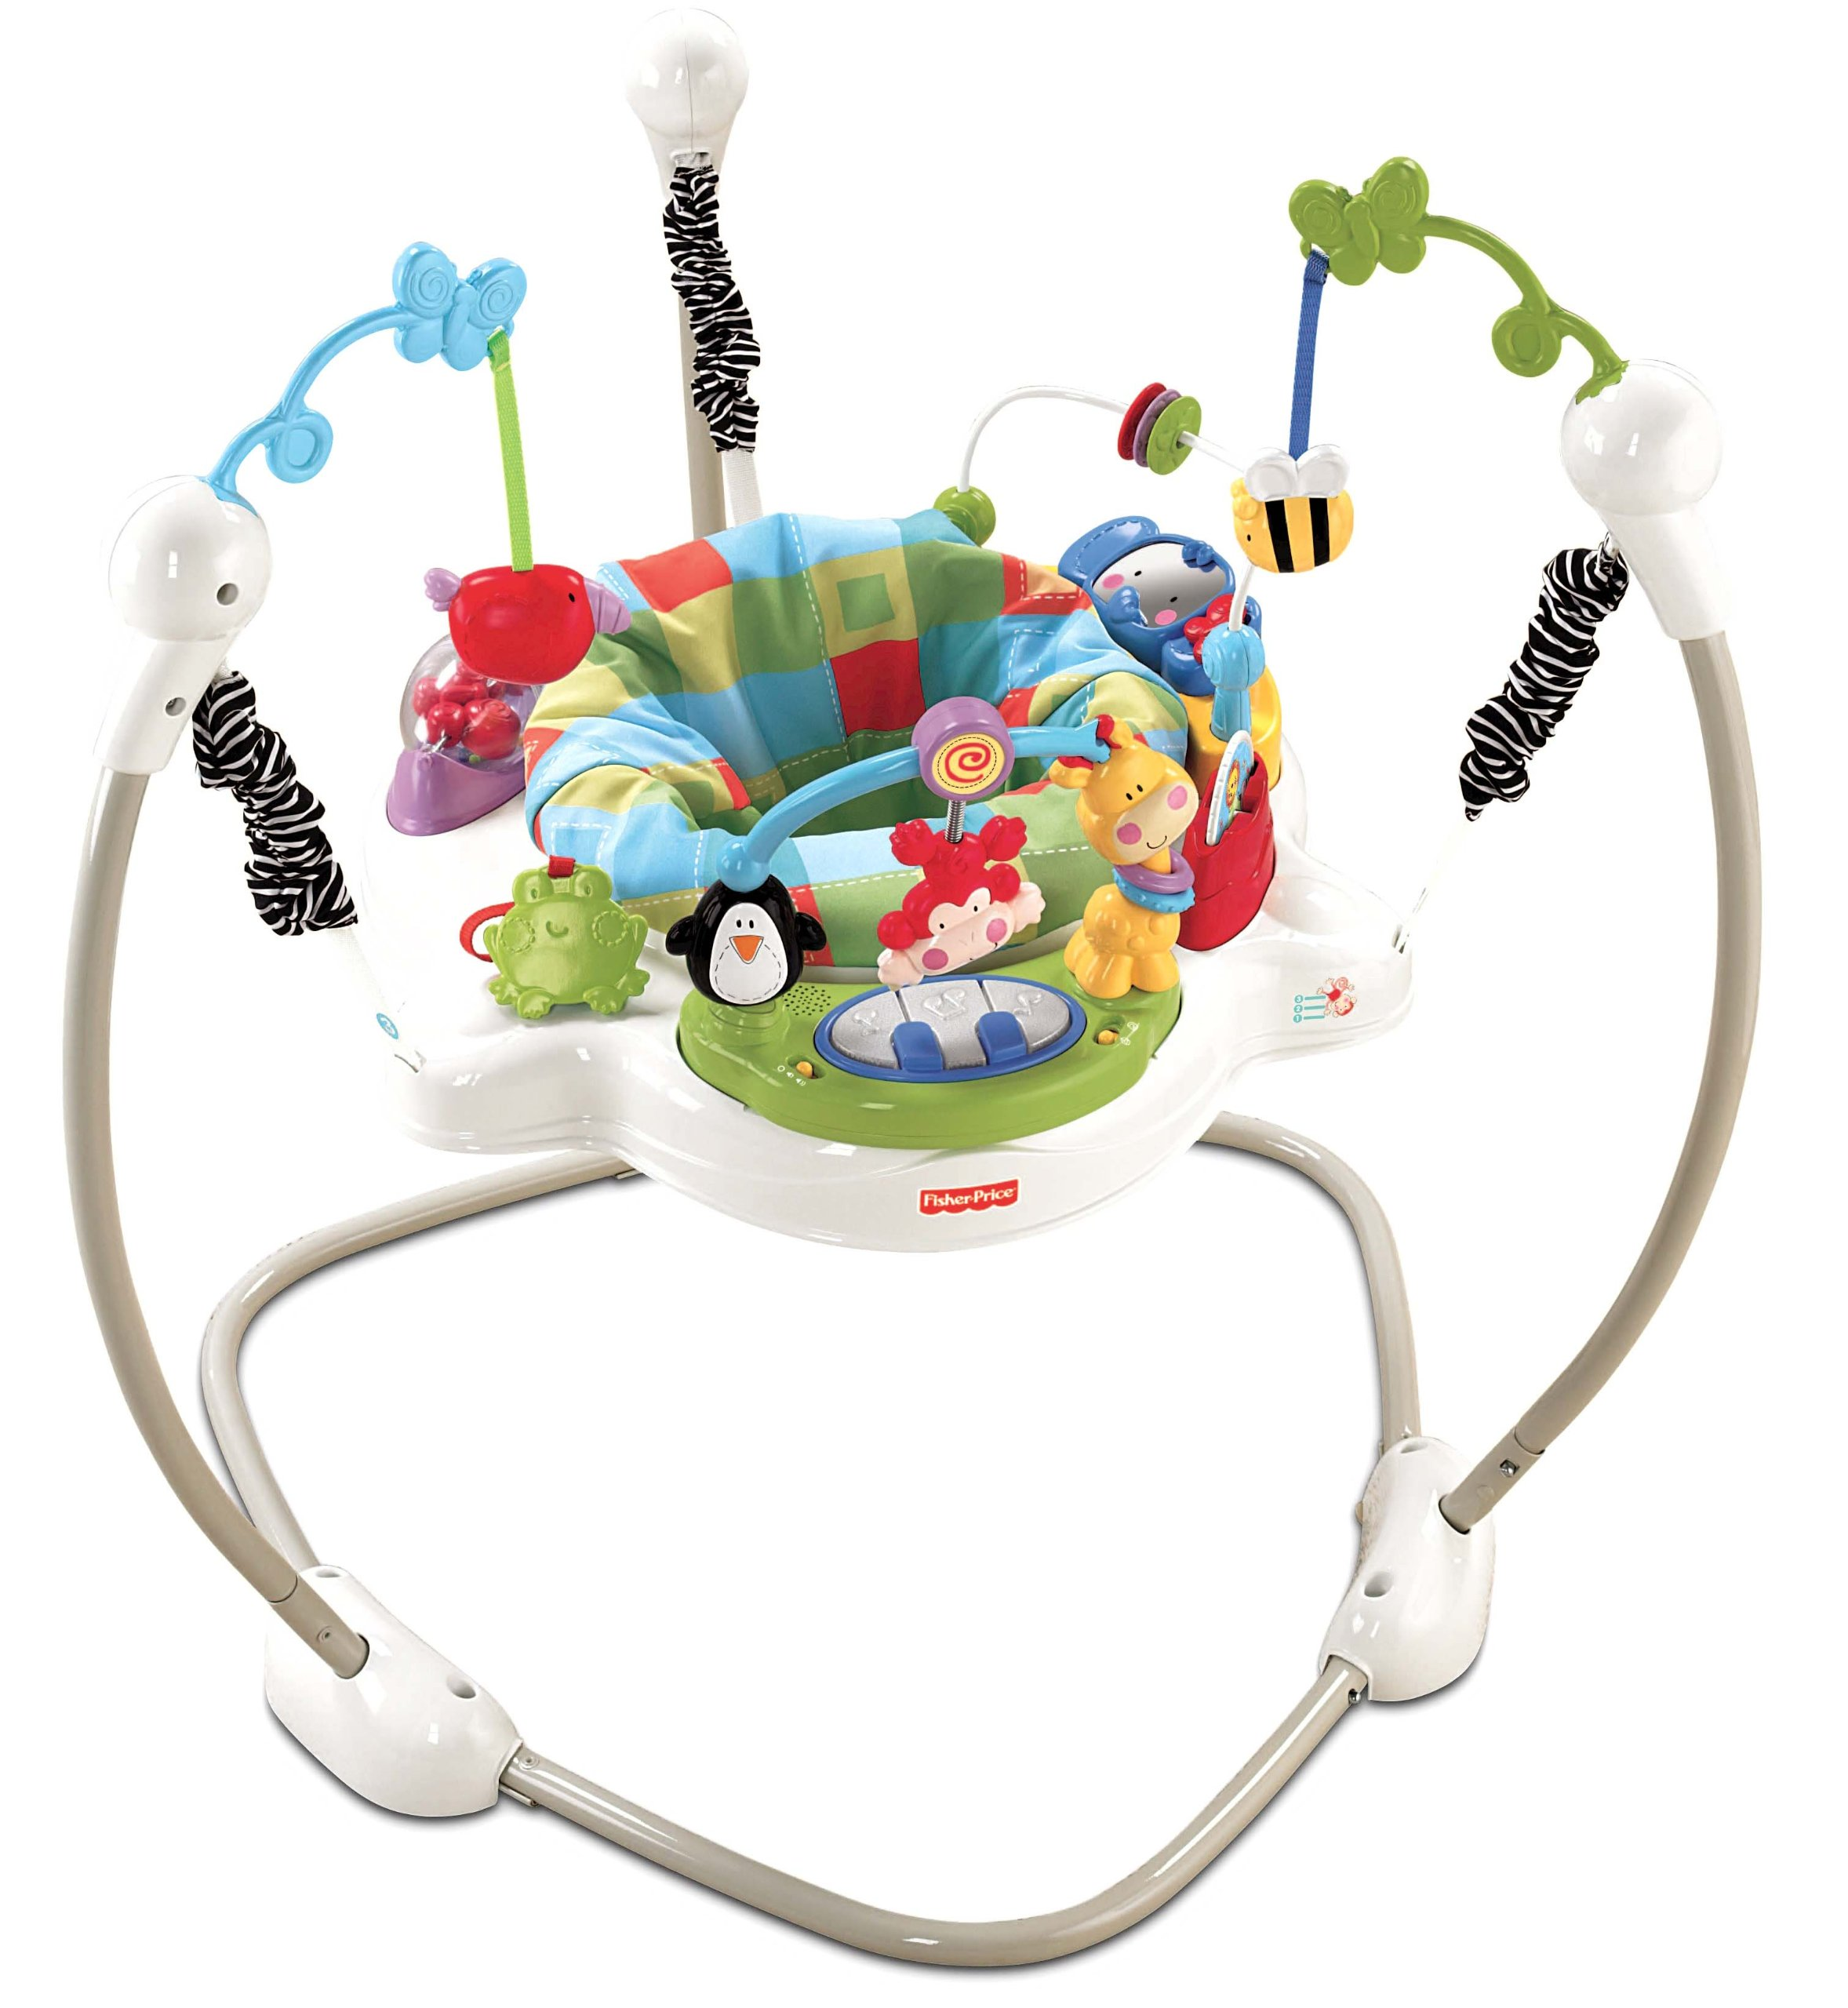 evenflo exersaucer jump and learn jumper jungle quest manual